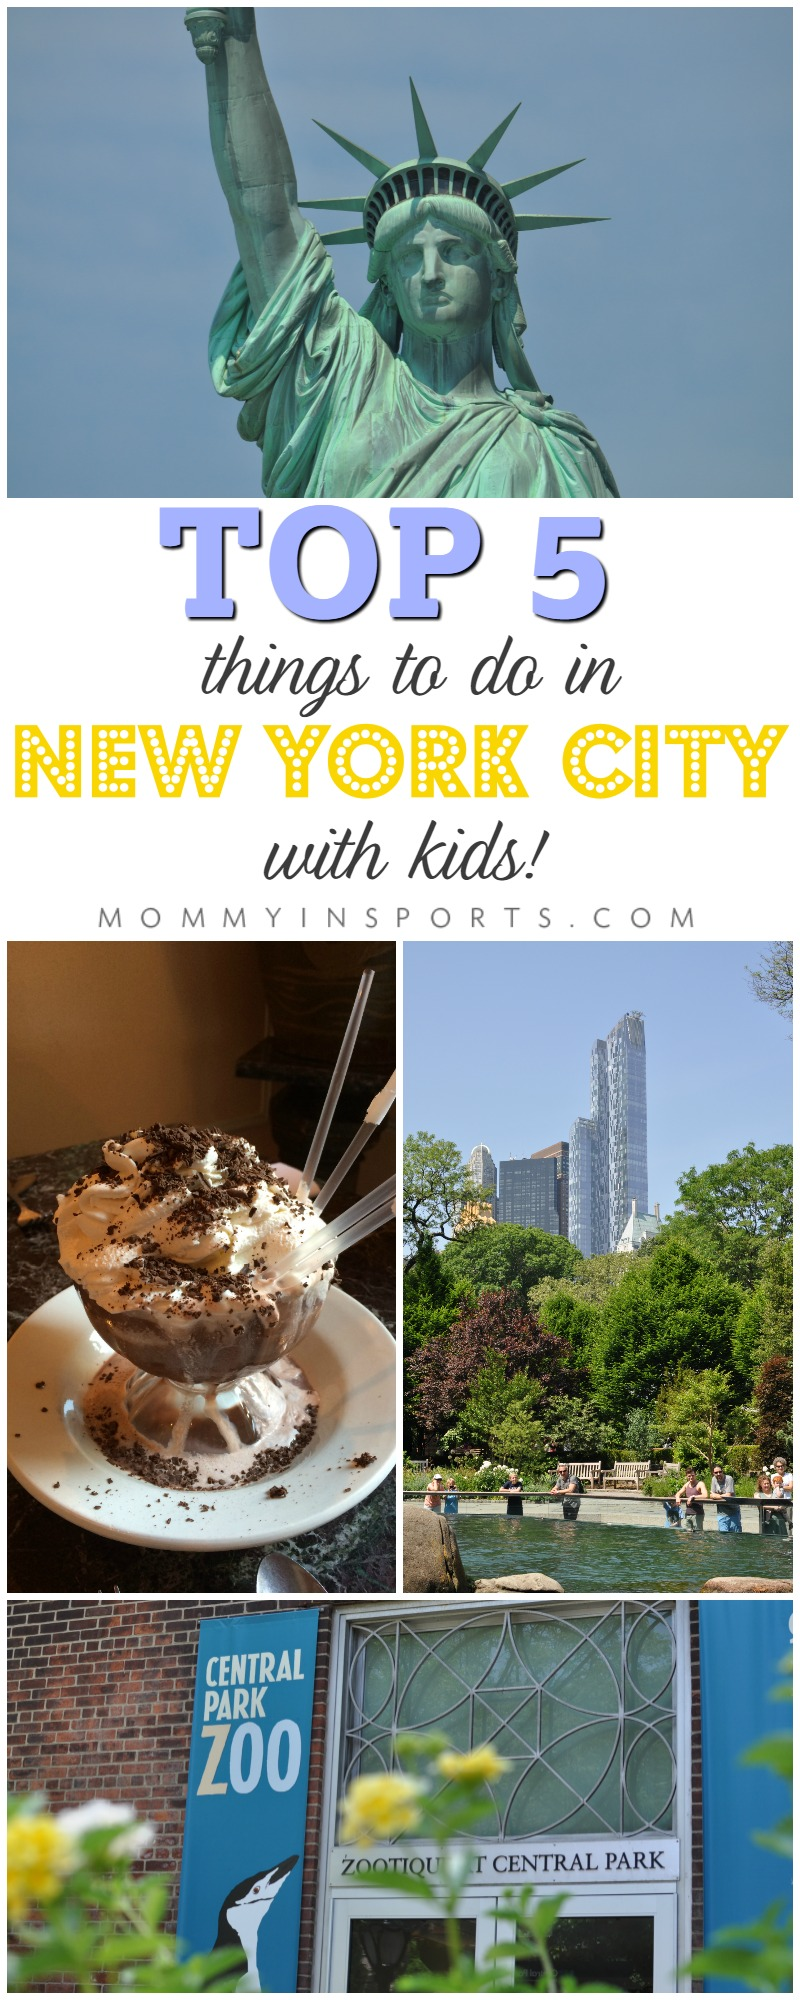 Top 5 things to do in new york city with kids kristen hewitt for Things to do in new york city with toddlers